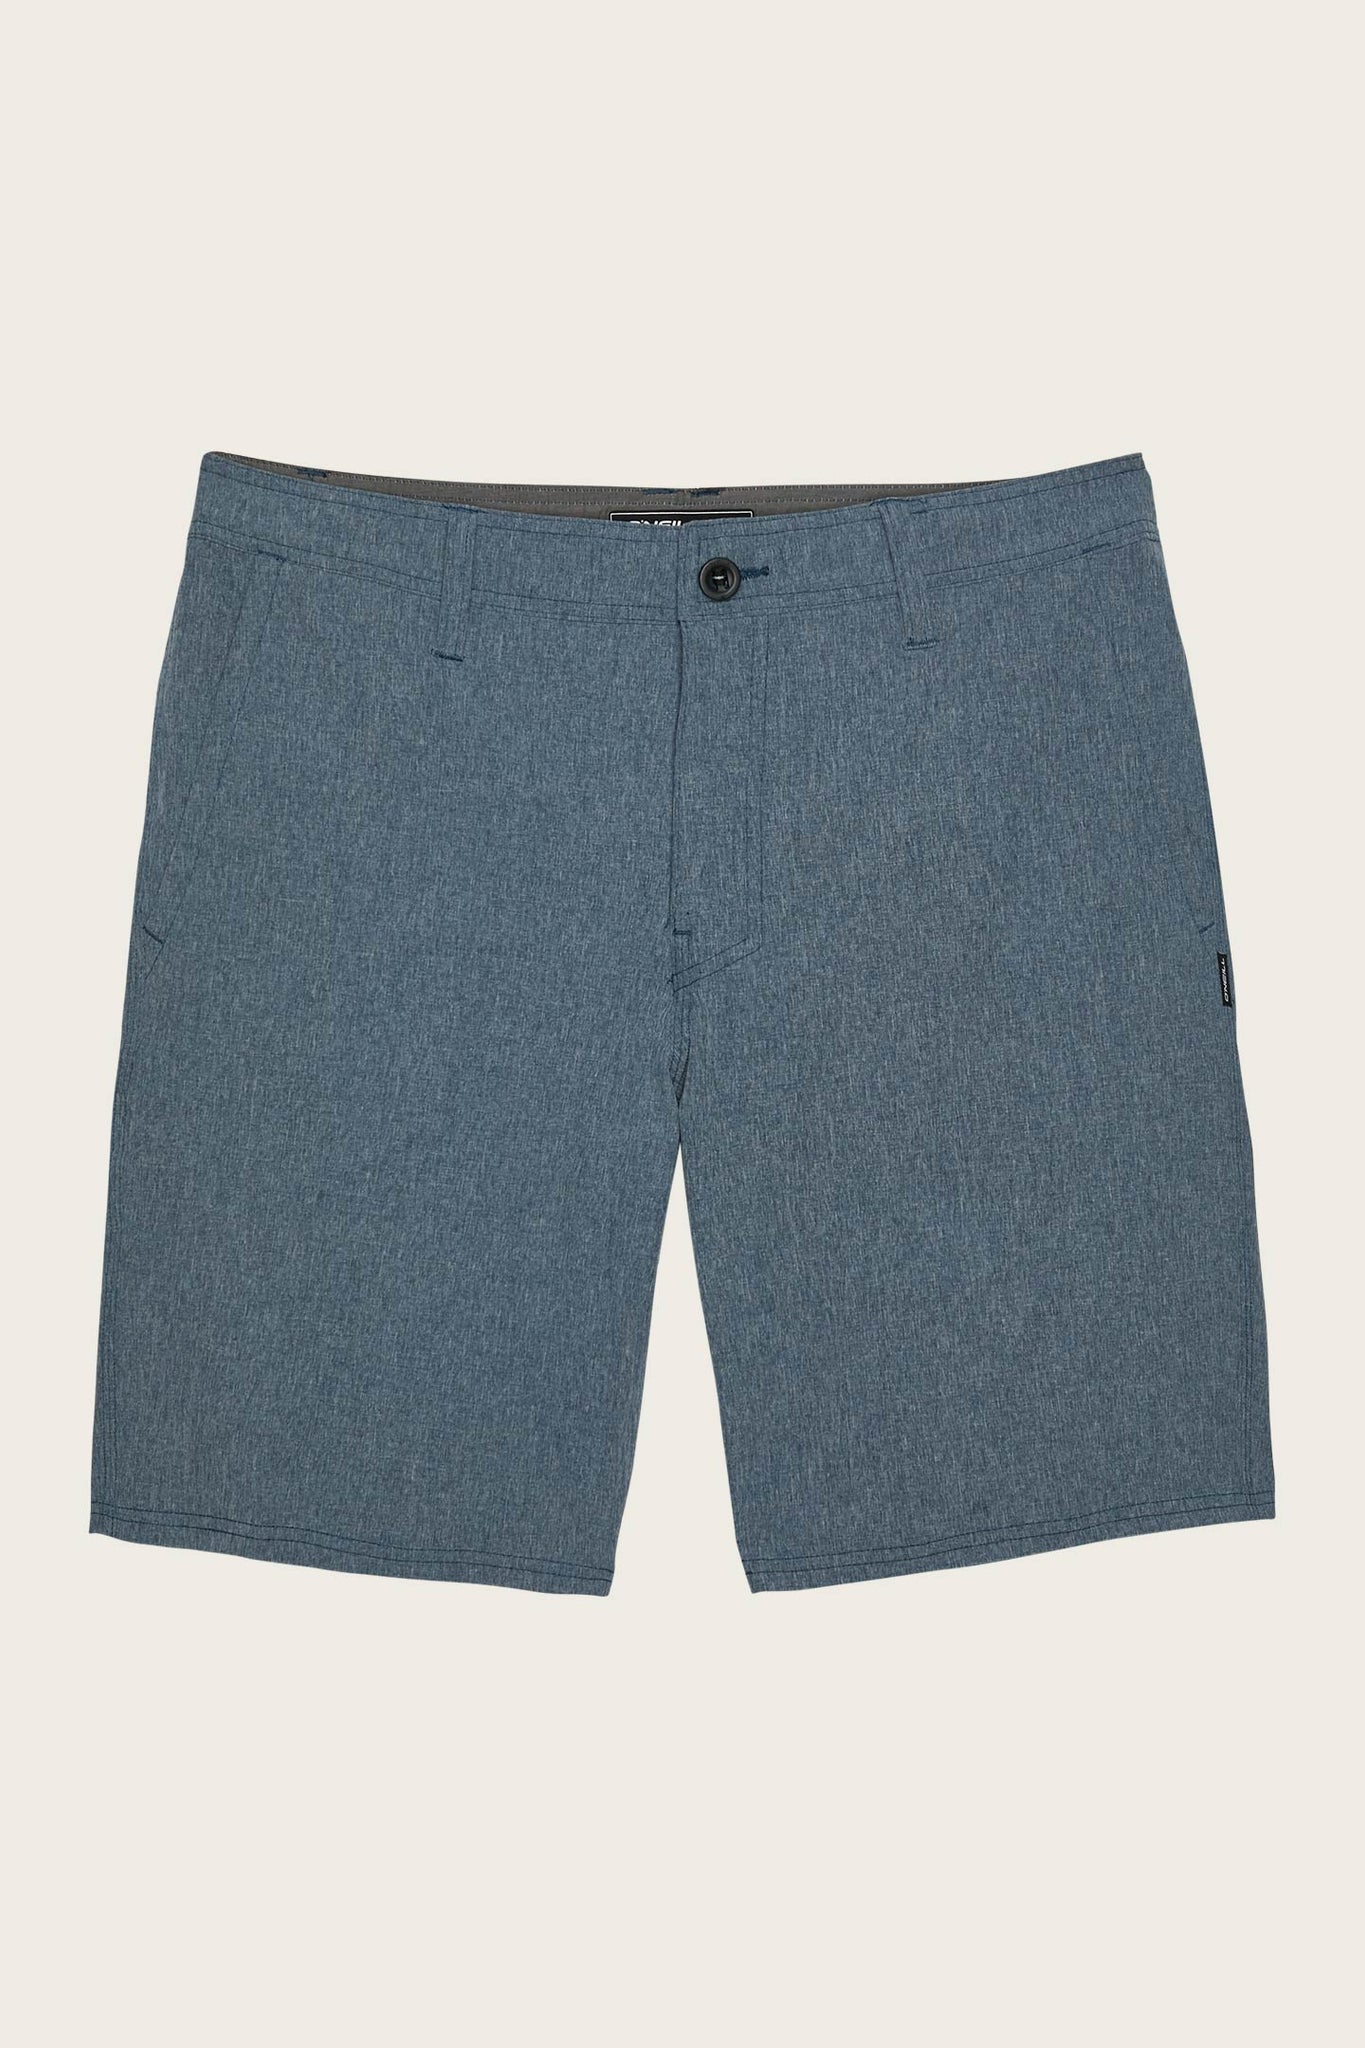 "Reserve Heather 19"" Hybrid Shorts - Navy 